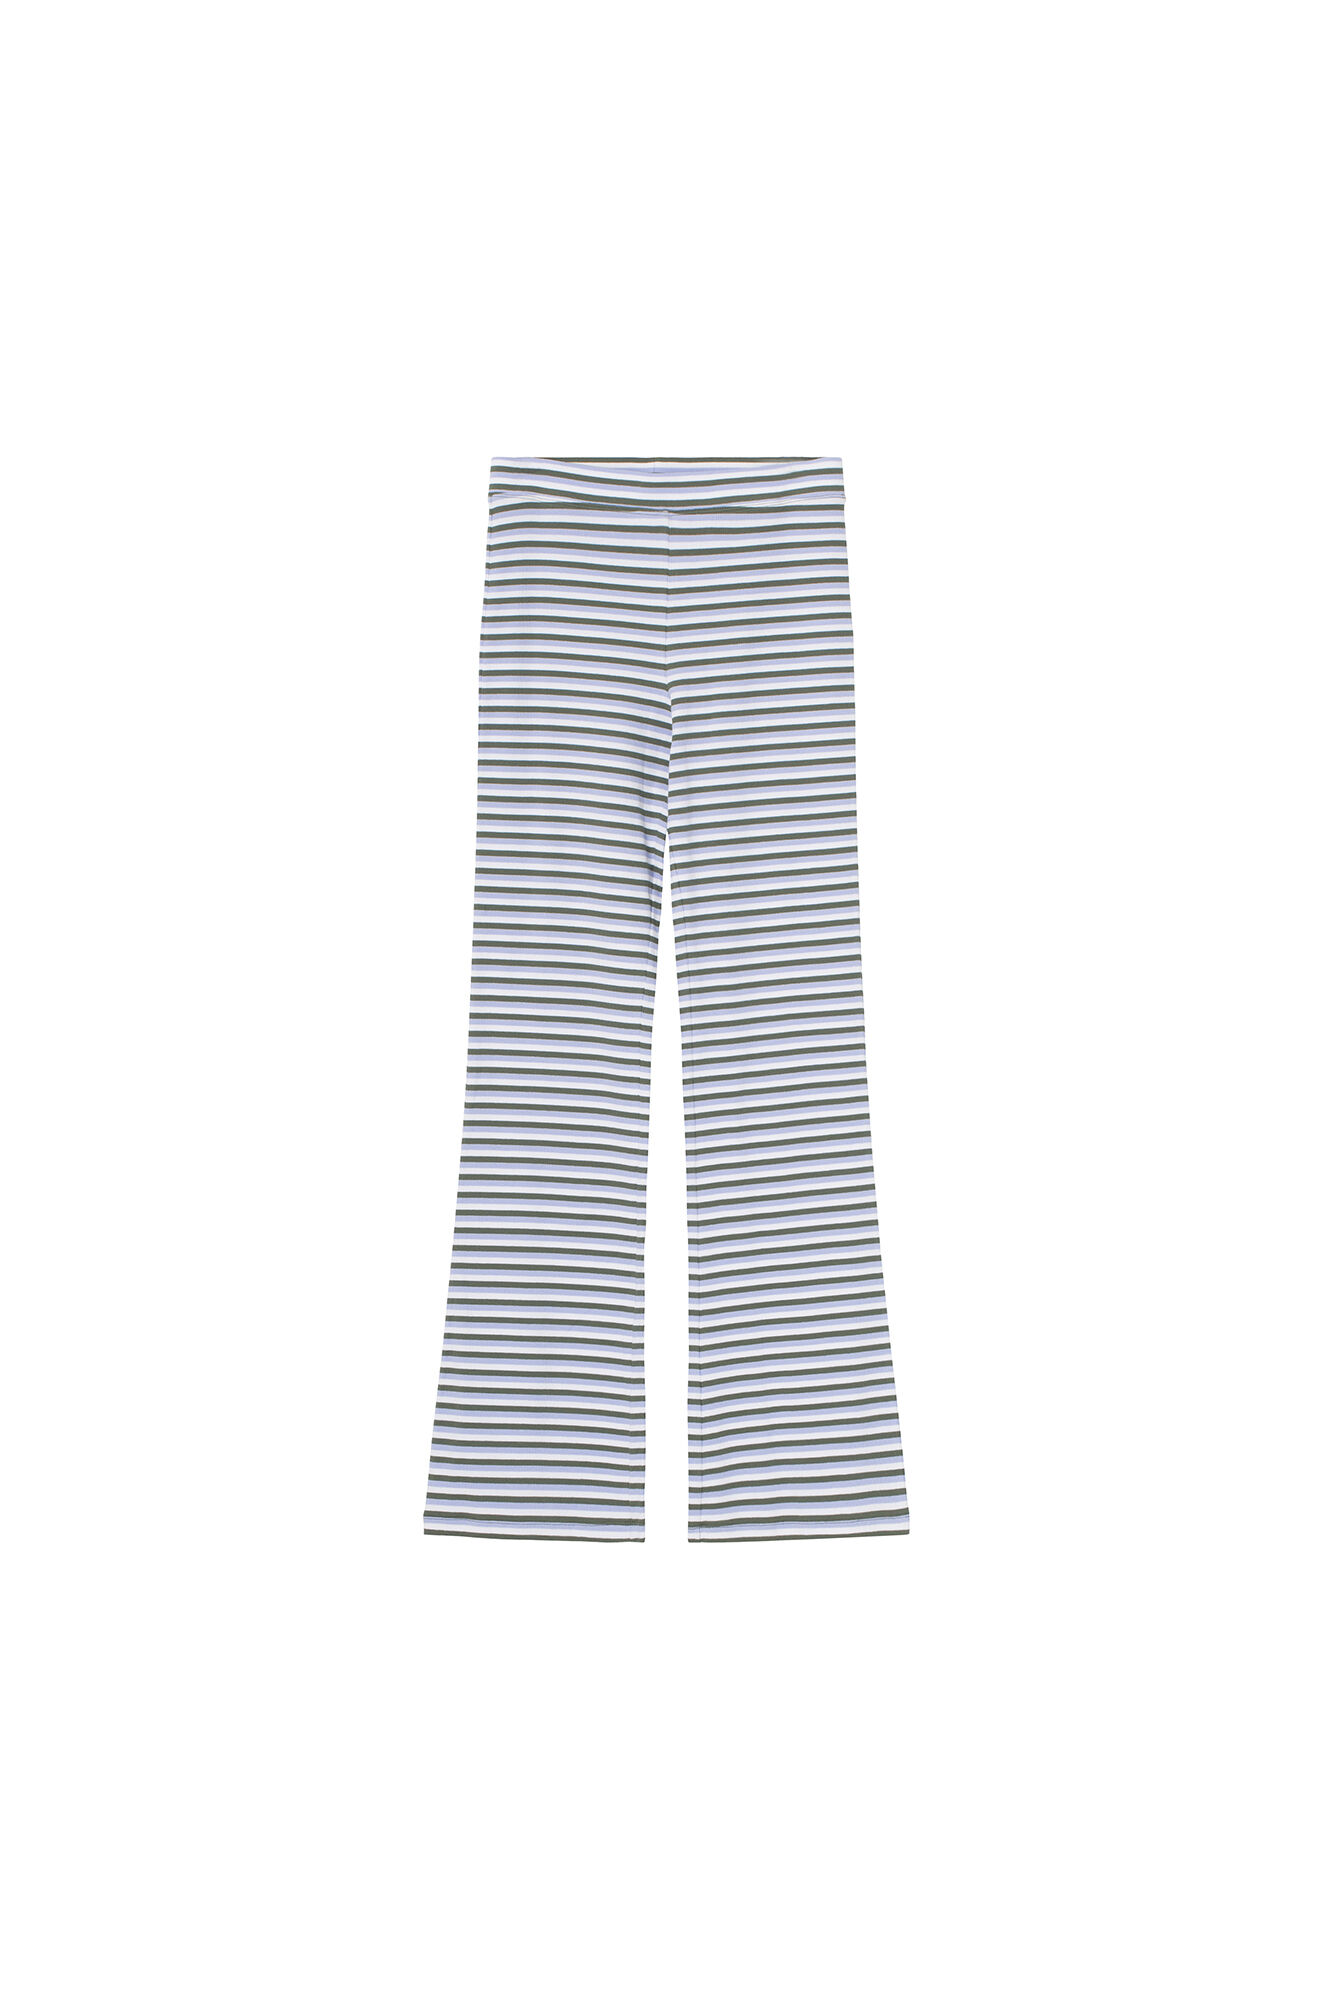 ENALLY PANTS ST 5314, THYME LILAC ST